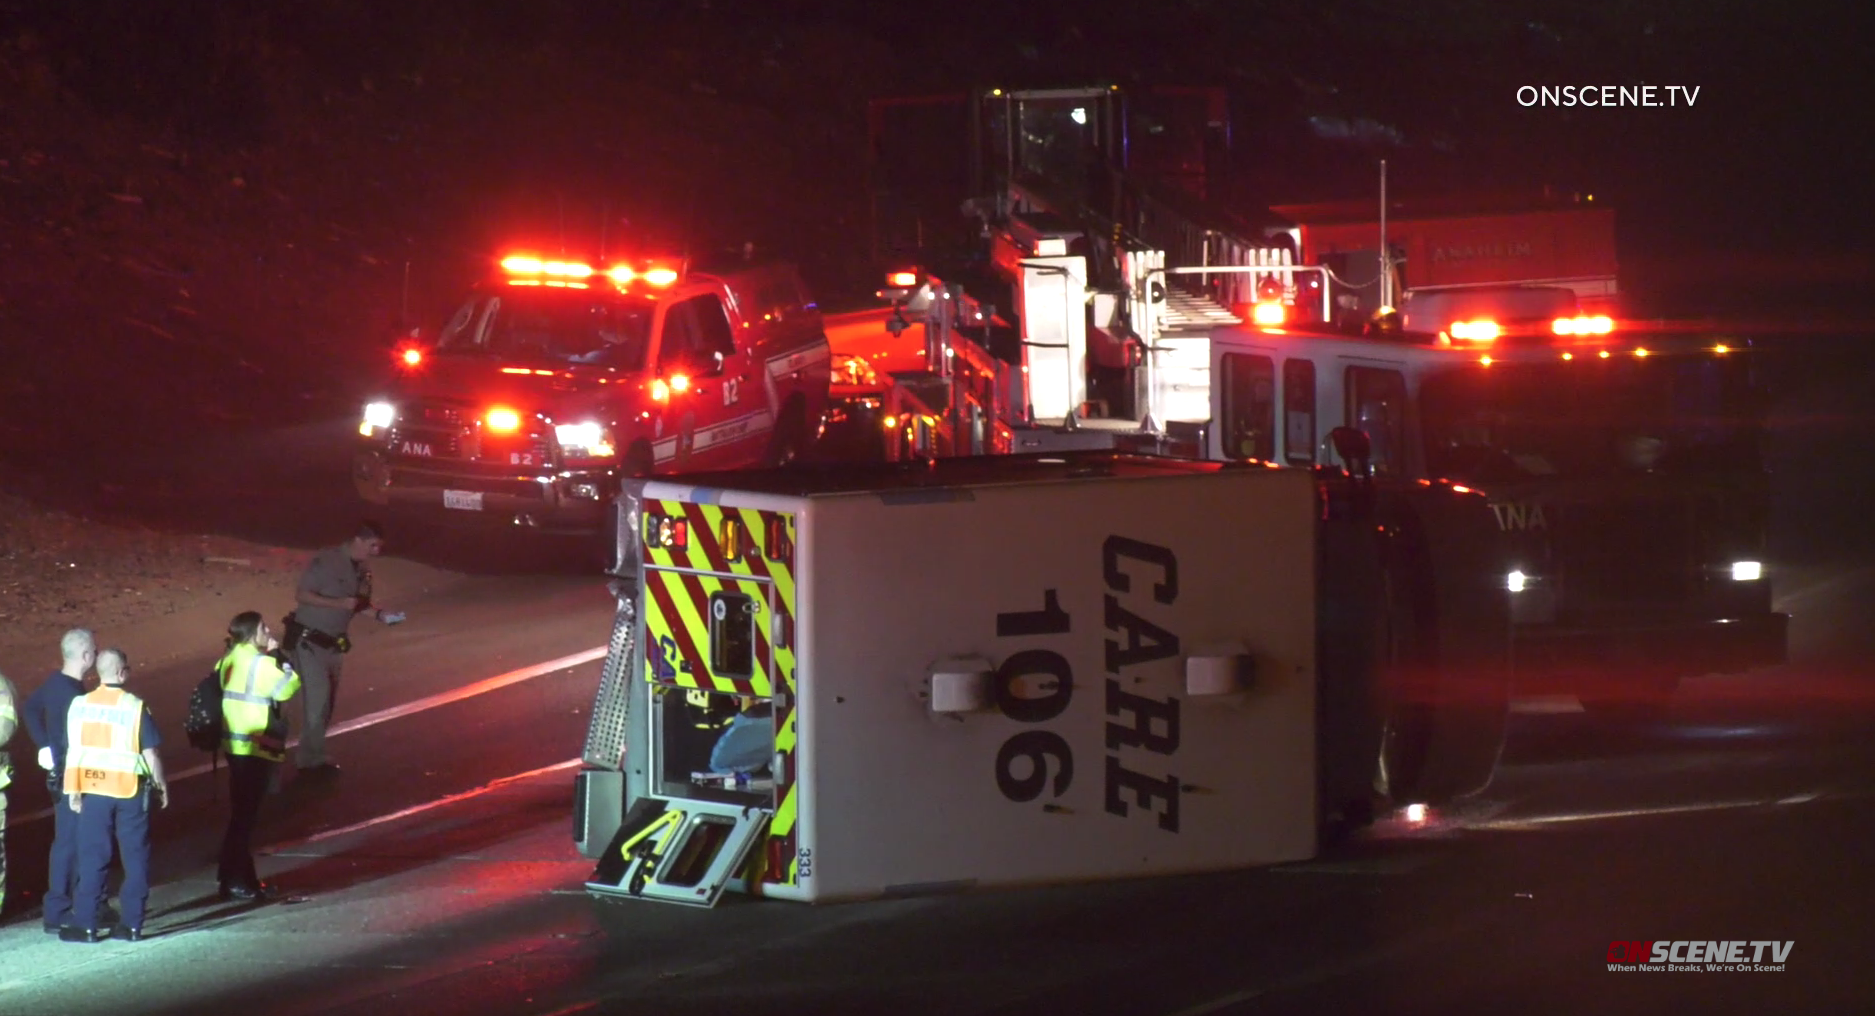 An ambulance is seen tipped over on its side following a hit-and-run crash on the 91 Freeway in Anaheim on Nov. 10, 2019. (Credit: Onscene.TV)